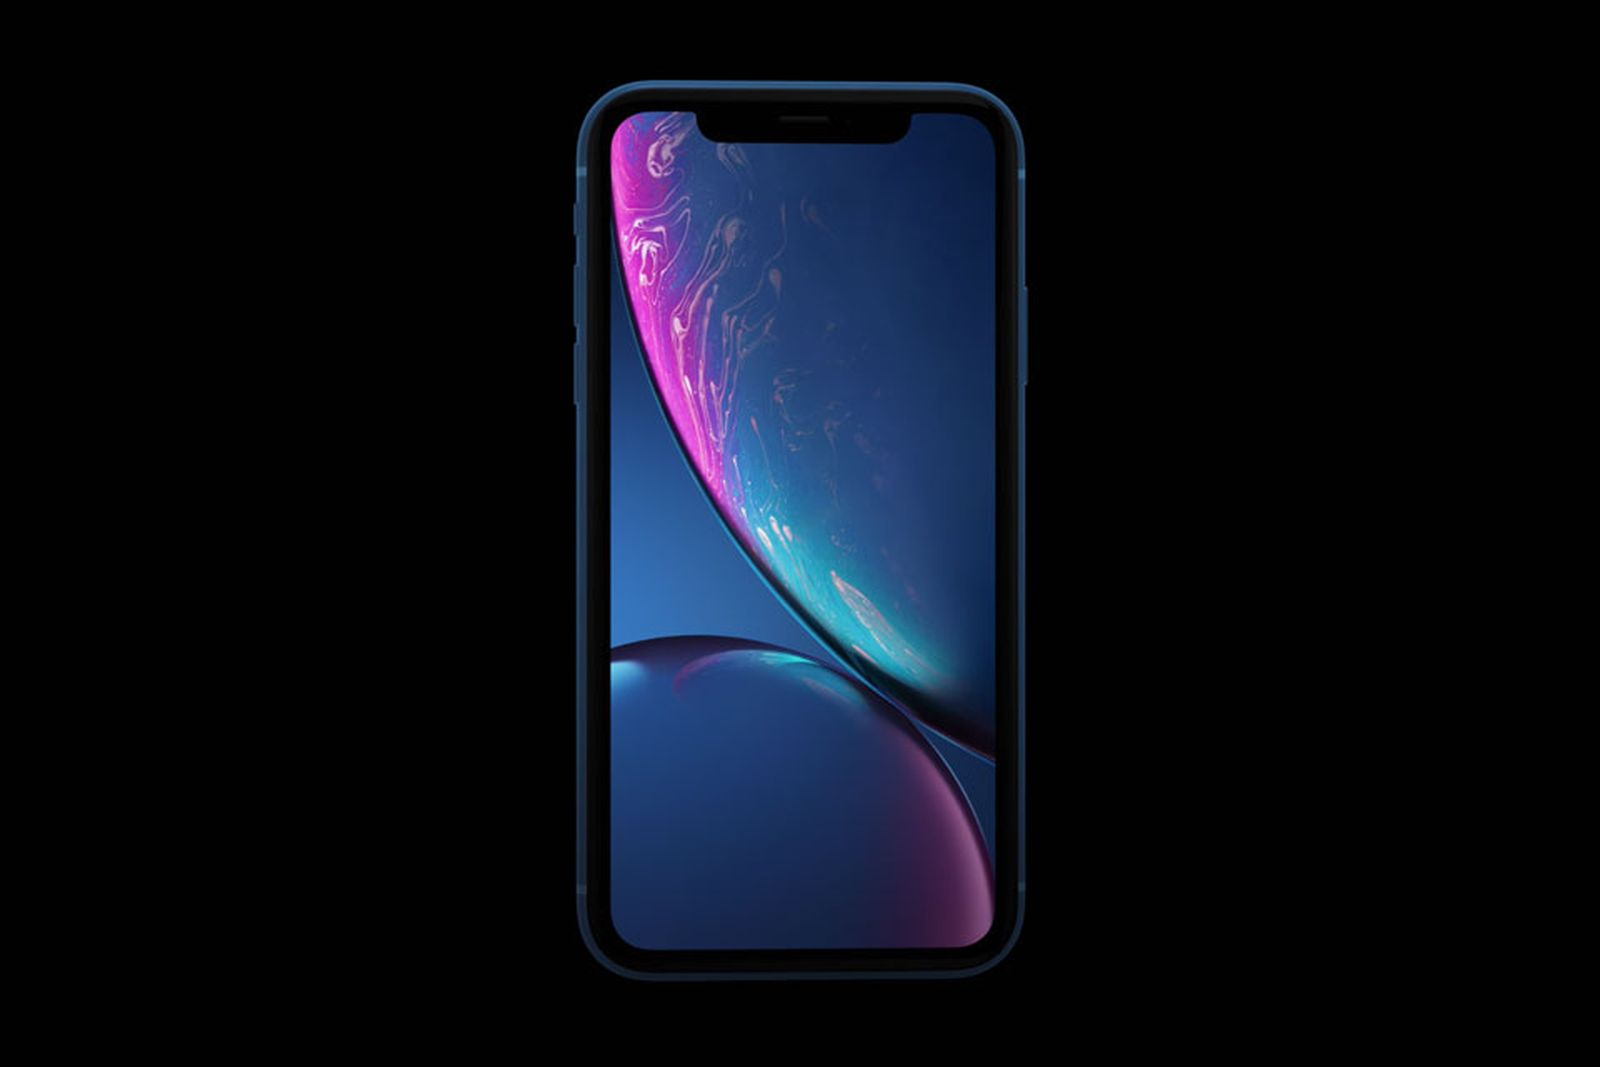 apple event iphone xr iPhone Xs Max